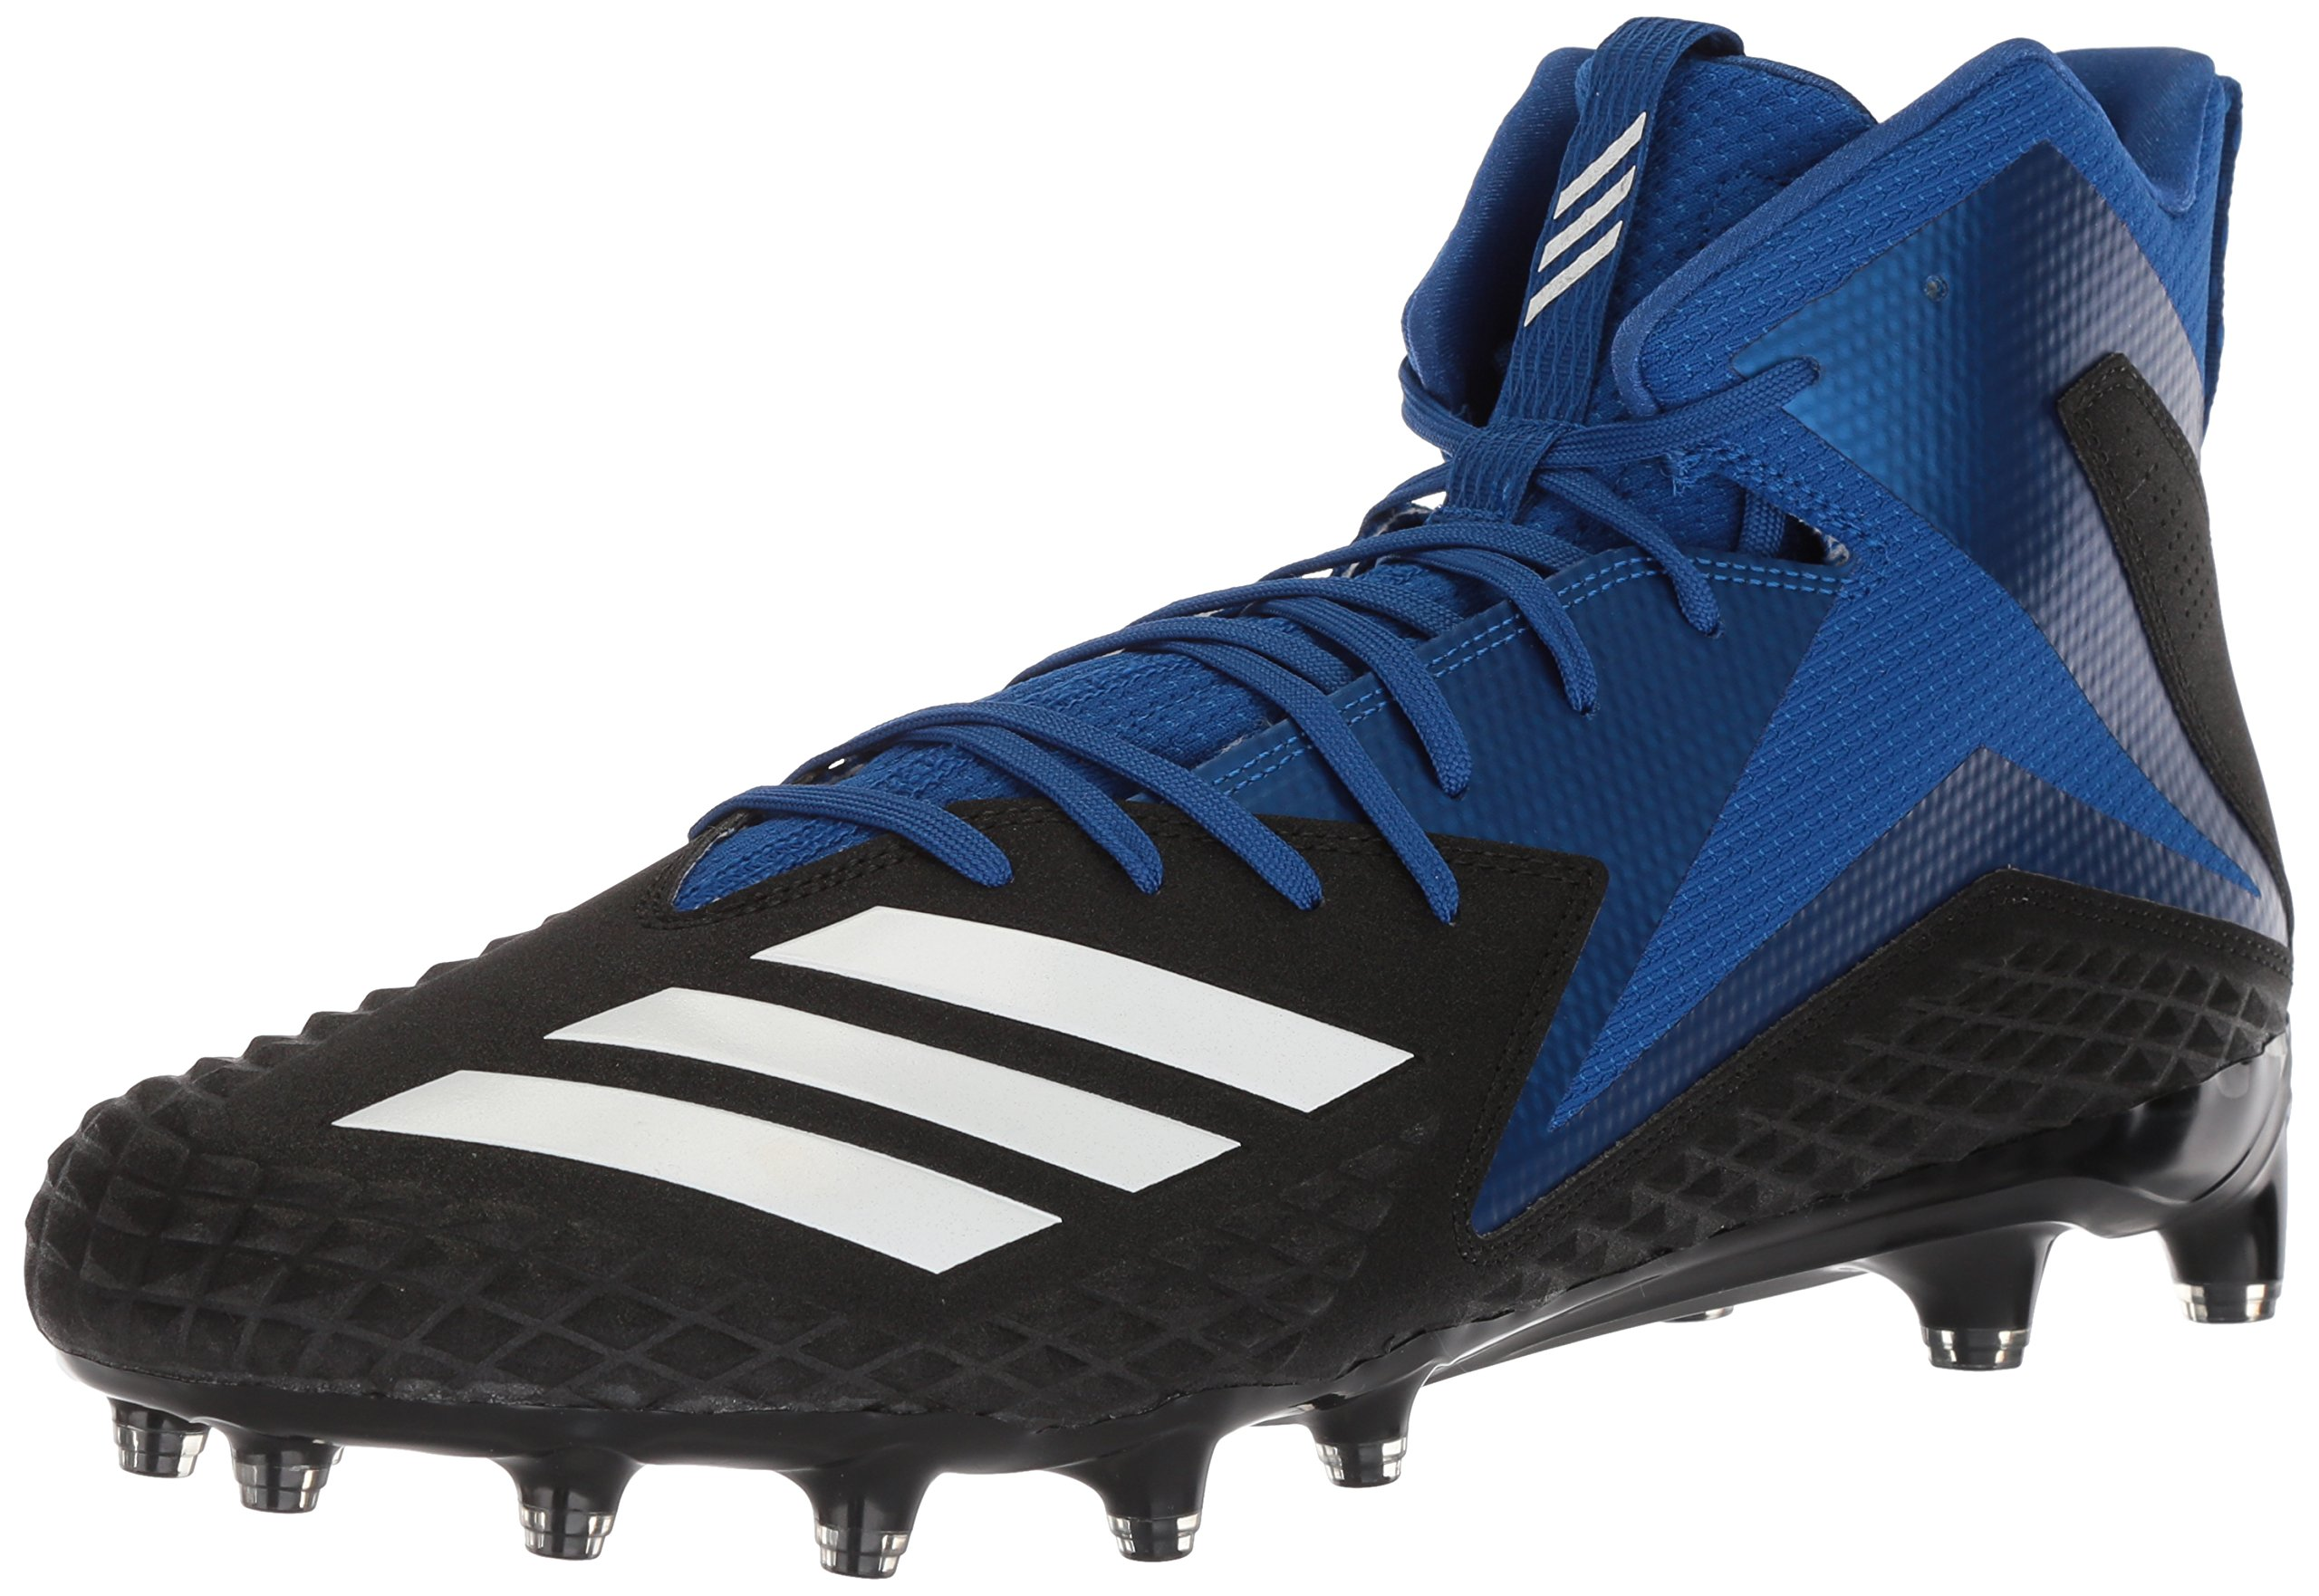 adidas Men's Freak X Carbon Mid Football Shoe, Black/White/Collegiate Royal, 11 M US